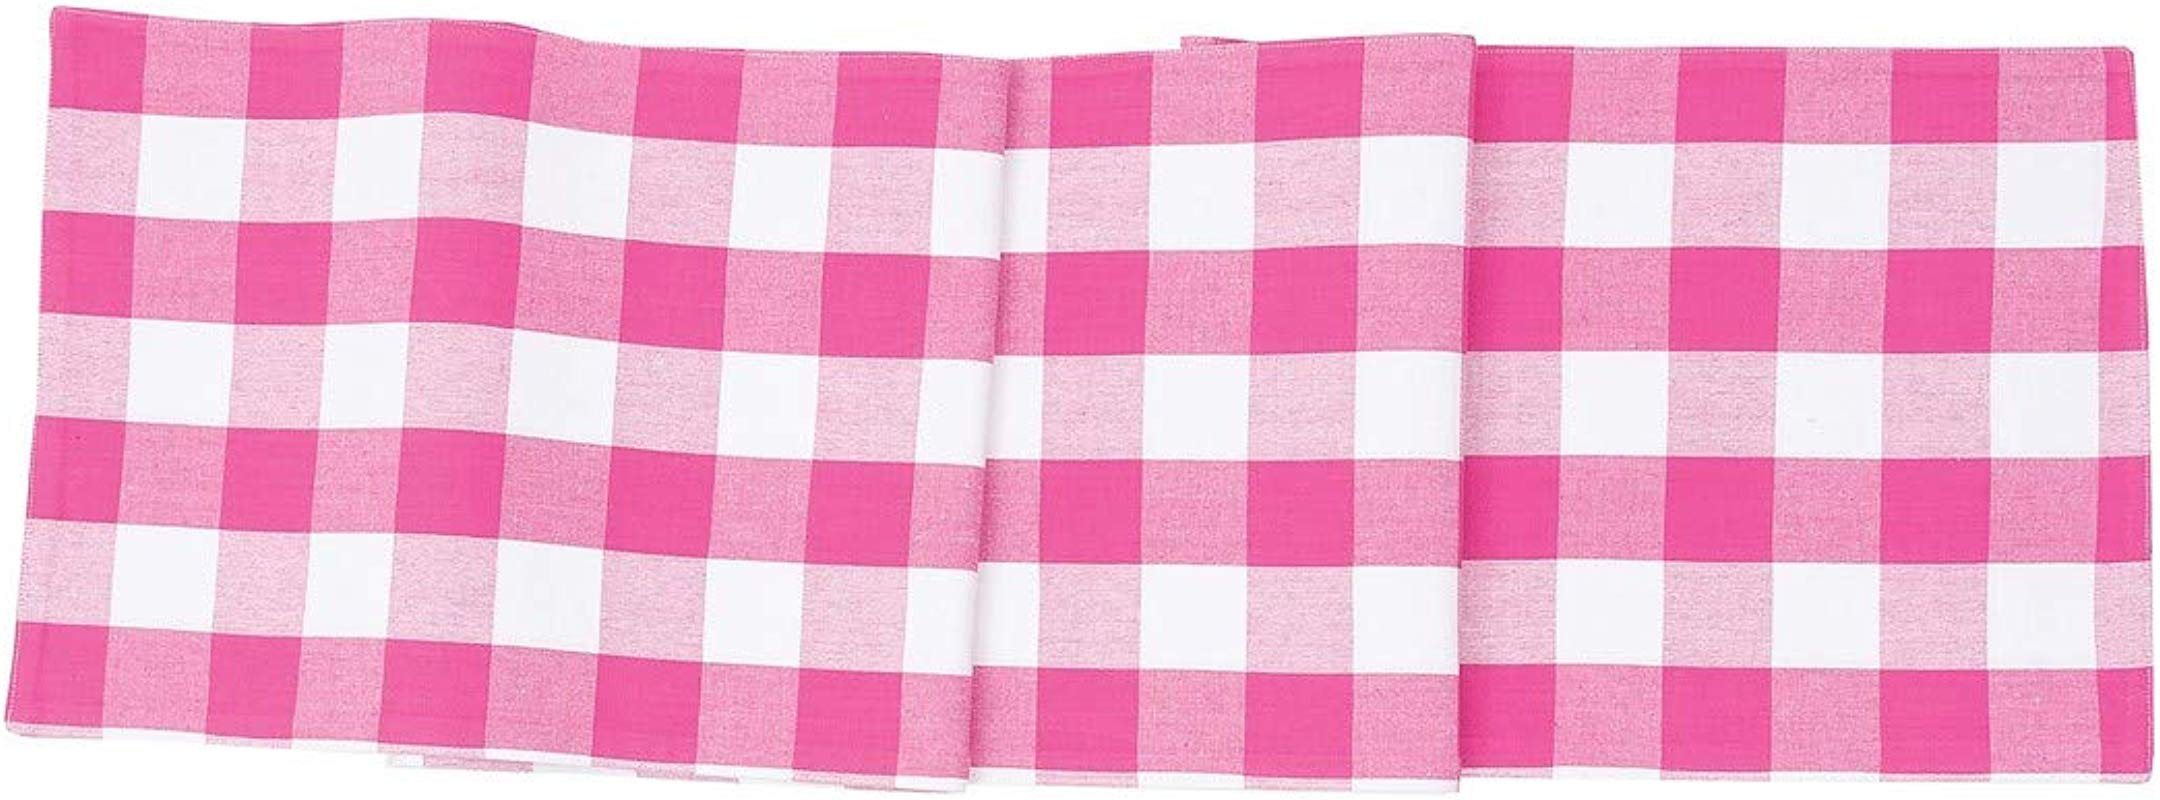 C F Home Franklin Buffalo Check Gingham Plaid Woven Fuchsia Light Pink And White Cotton Table Cotton Machine Washable Runner Table Runner Fuchsia